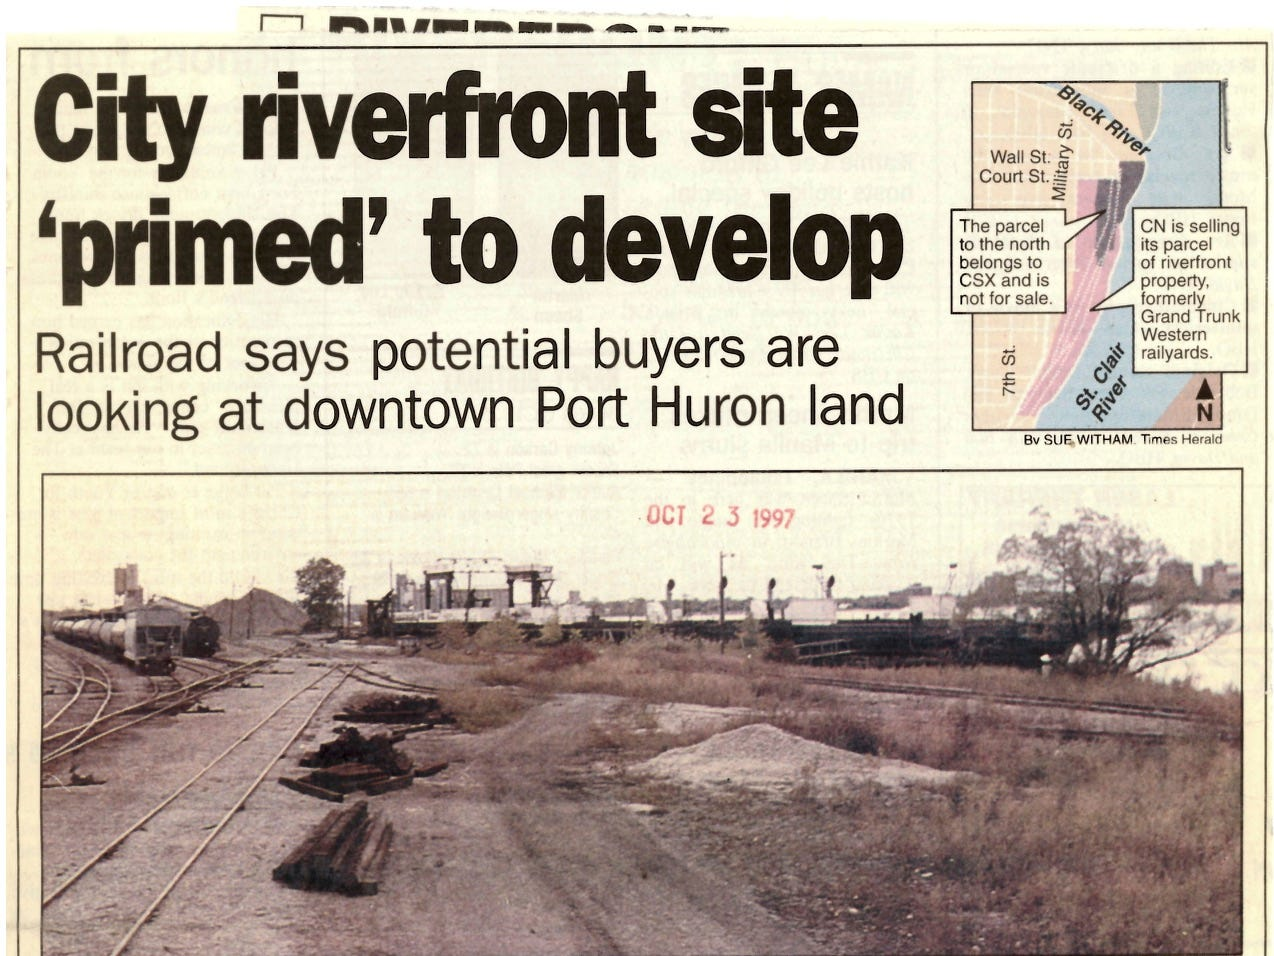 In an October 1997 clipping, CN Railroad officials are optimistic about the sale of the riverfront land south of the Black River in Port Huron, where the CSX and Grand Trunk Western railyards used to be.